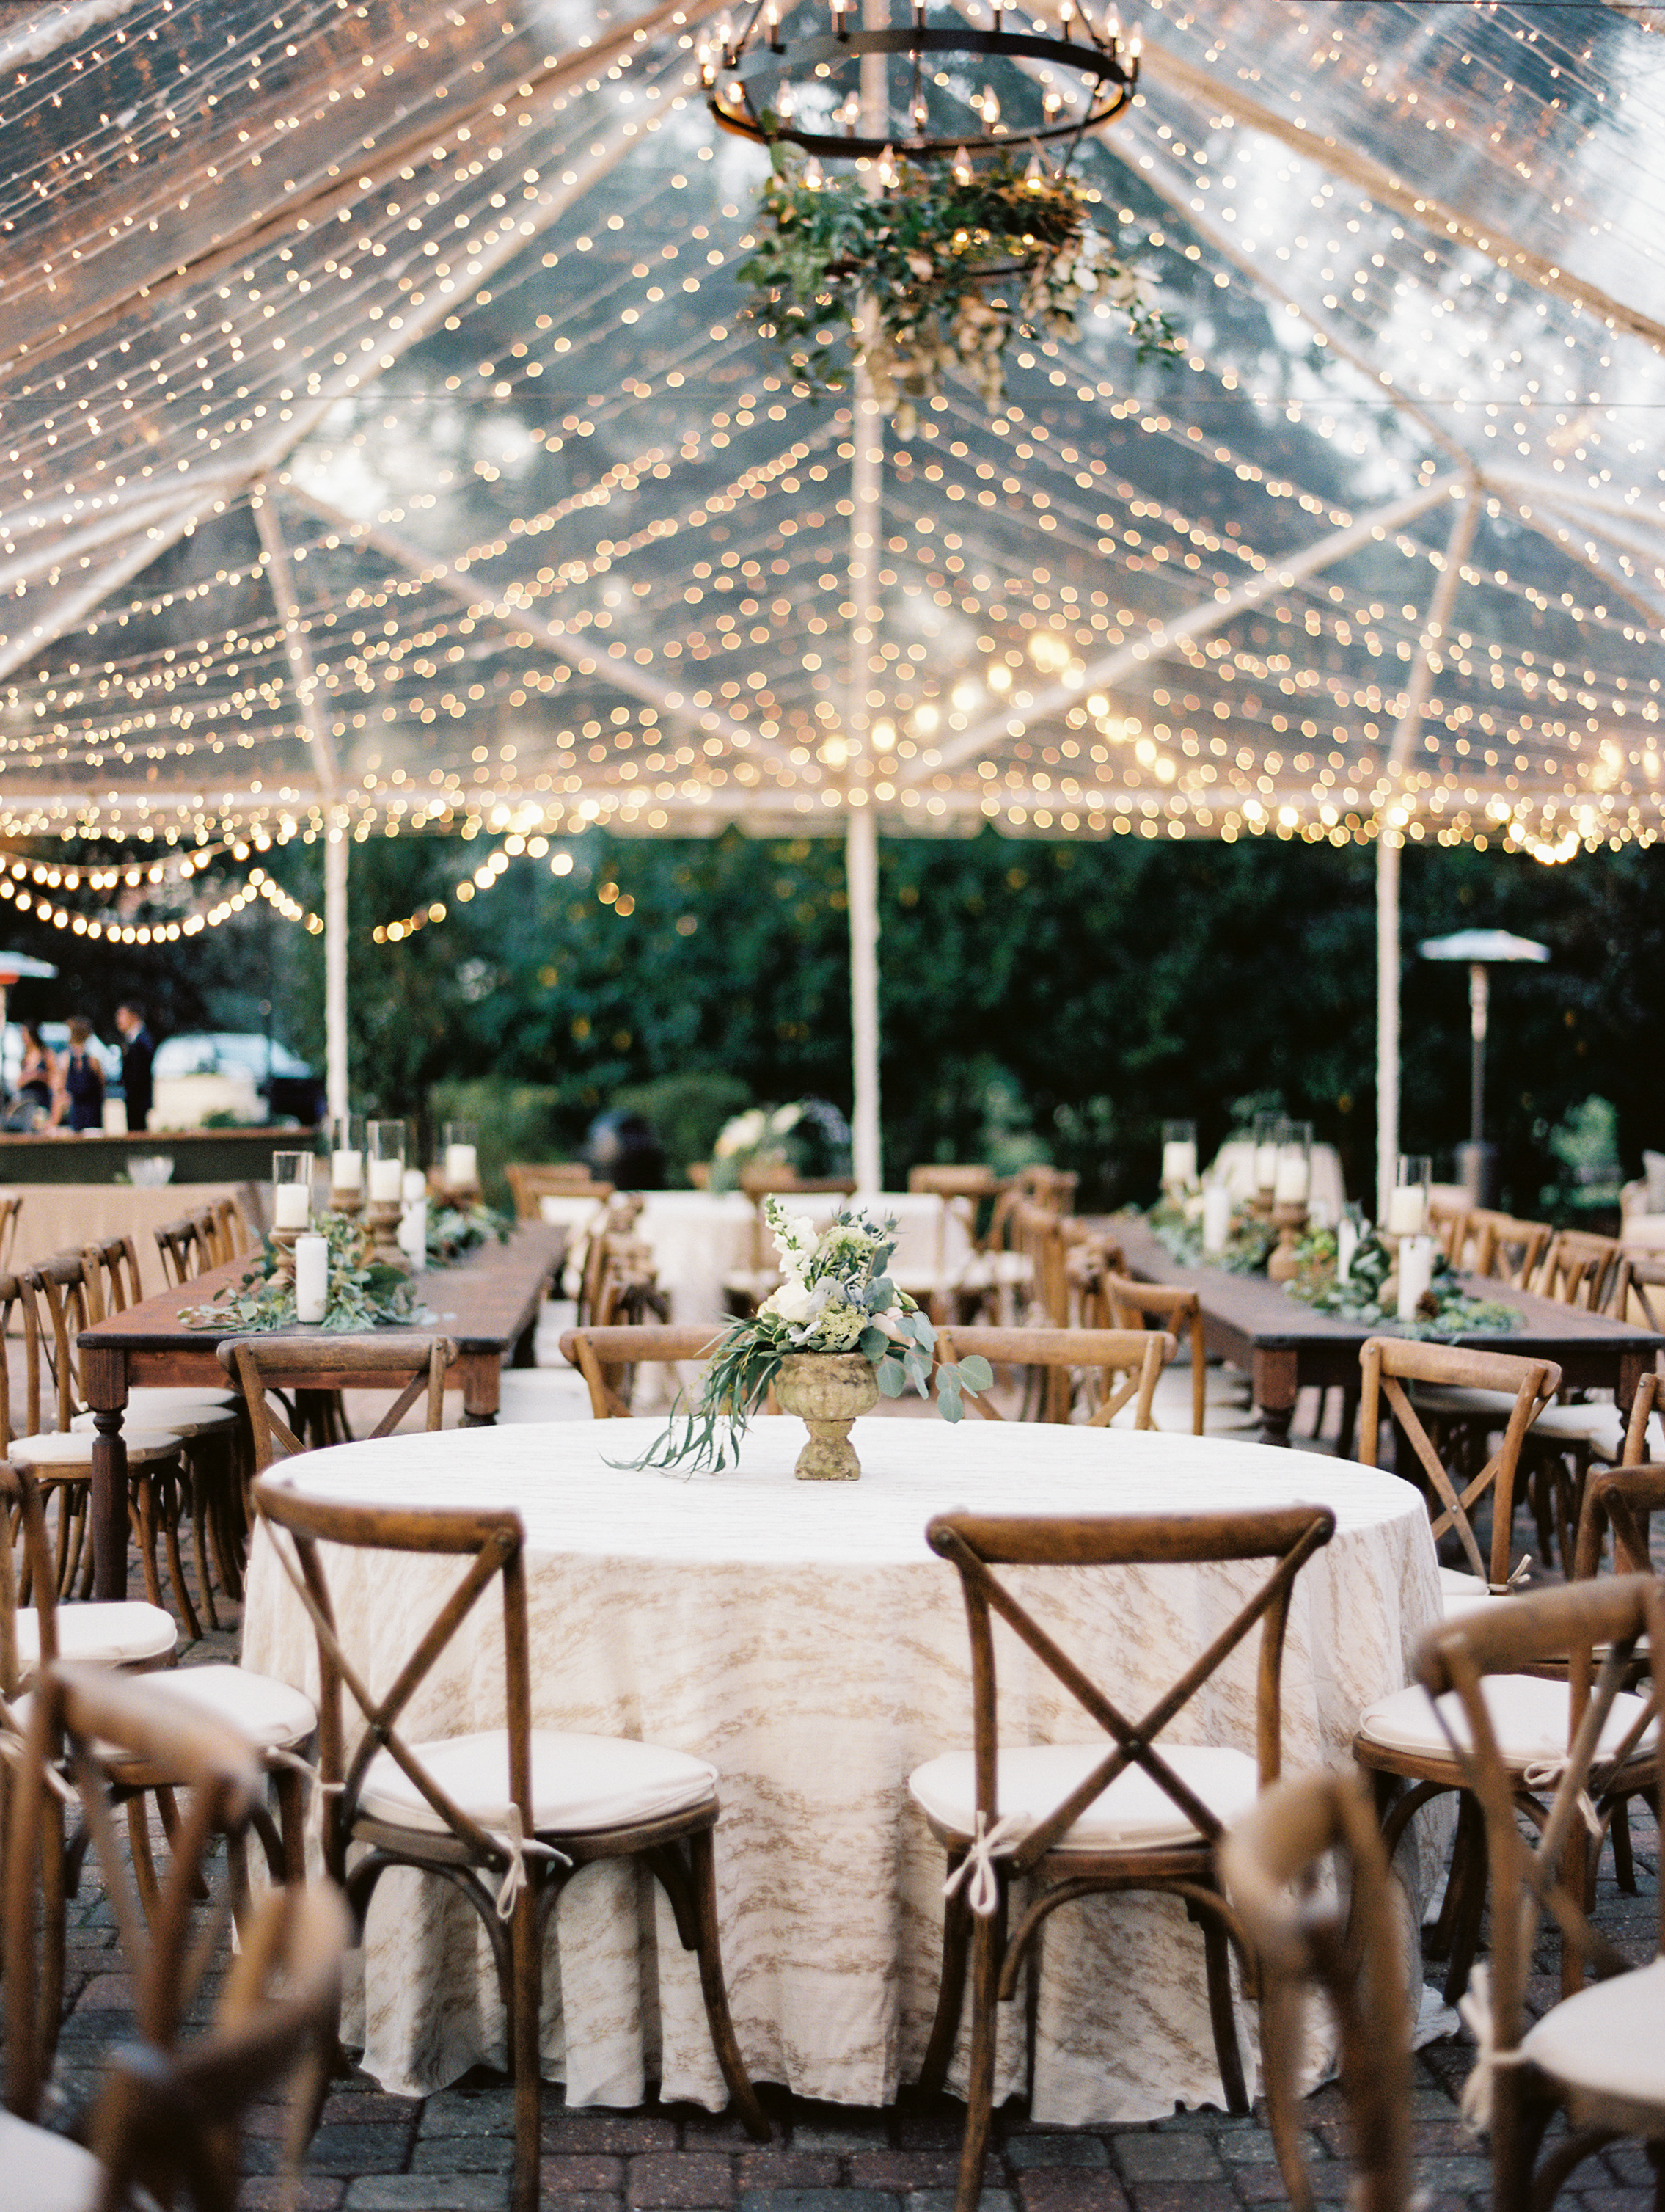 Southern Fete, Southern Wedding, Peregrin's Florist, Party Central, LoveGood Rentals, Sarah Beth Photography, Light Decor, Tent Reception